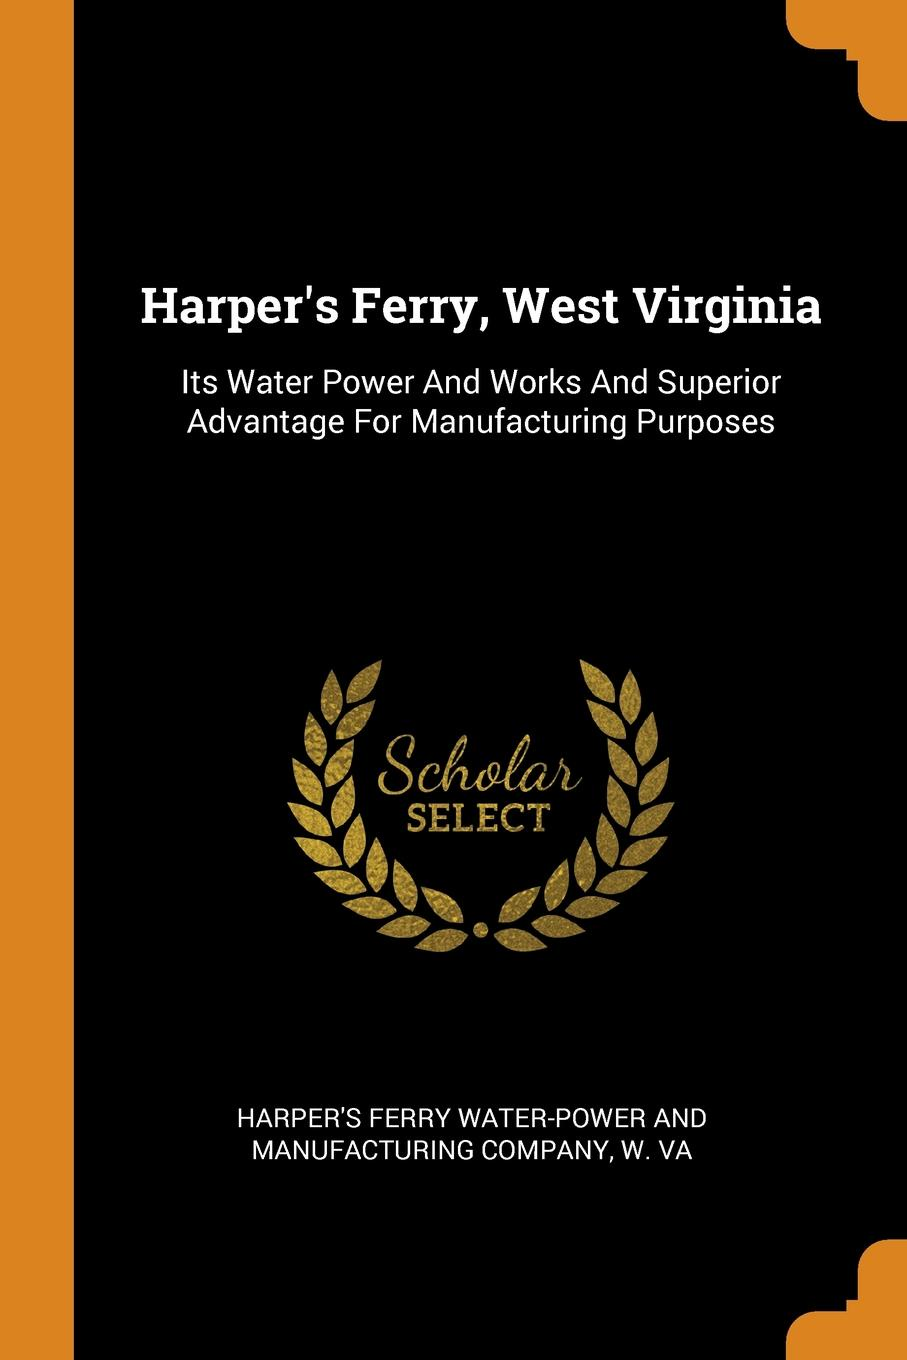 Harper.s Ferry, West Virginia. Its Water Power And Works And Superior Advantage For Manufacturing Purposes